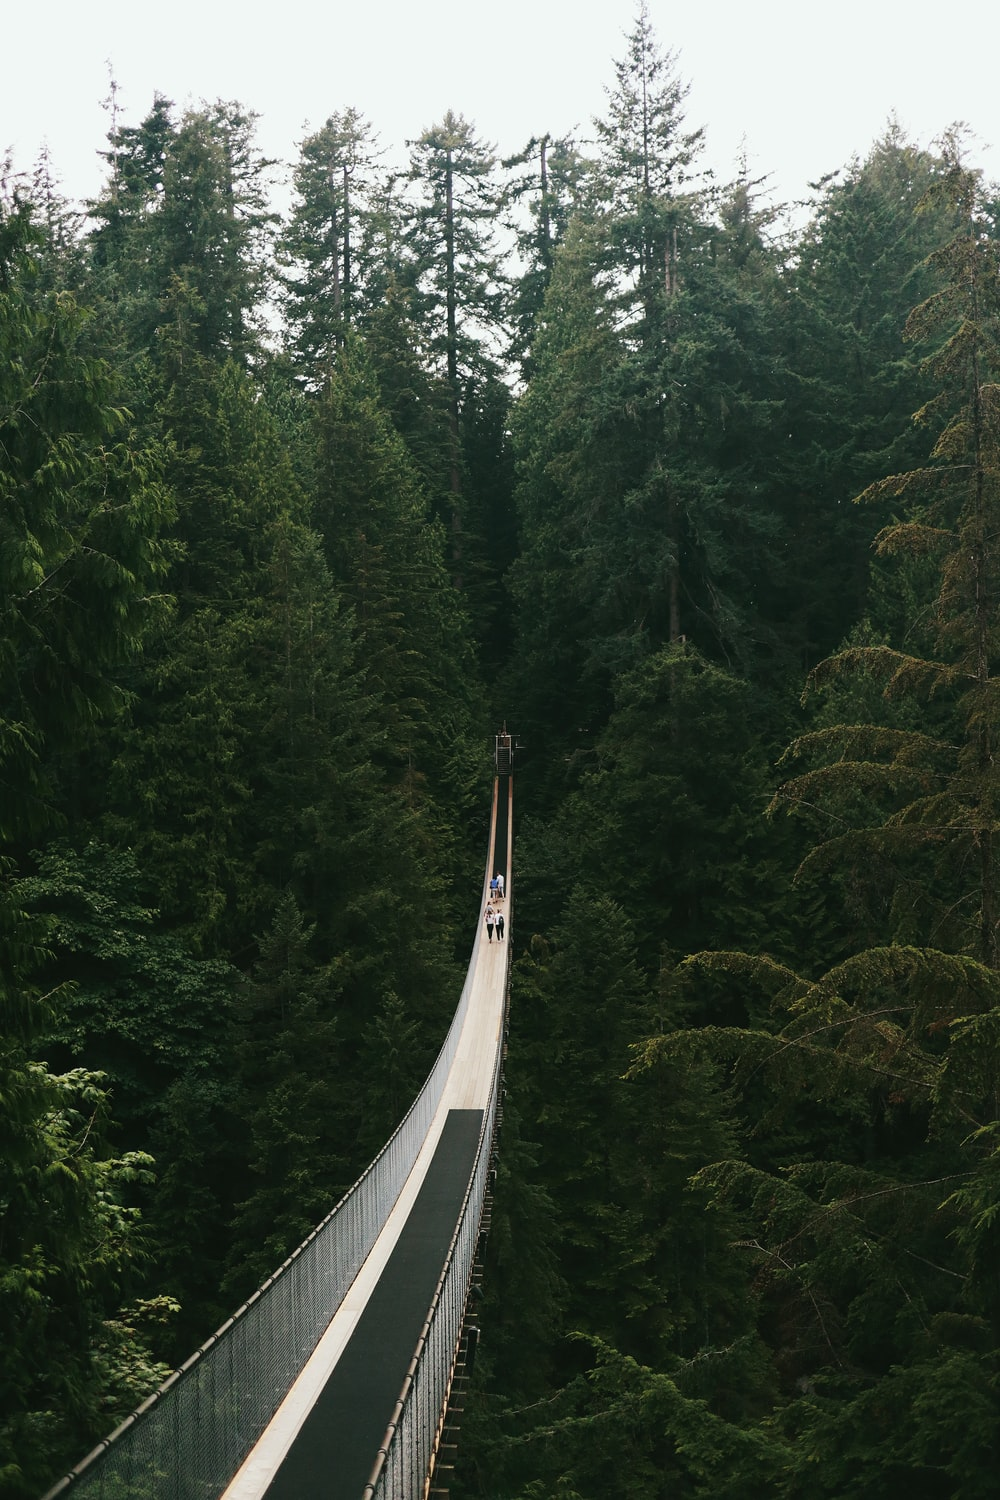 white bridge in the middle of forest